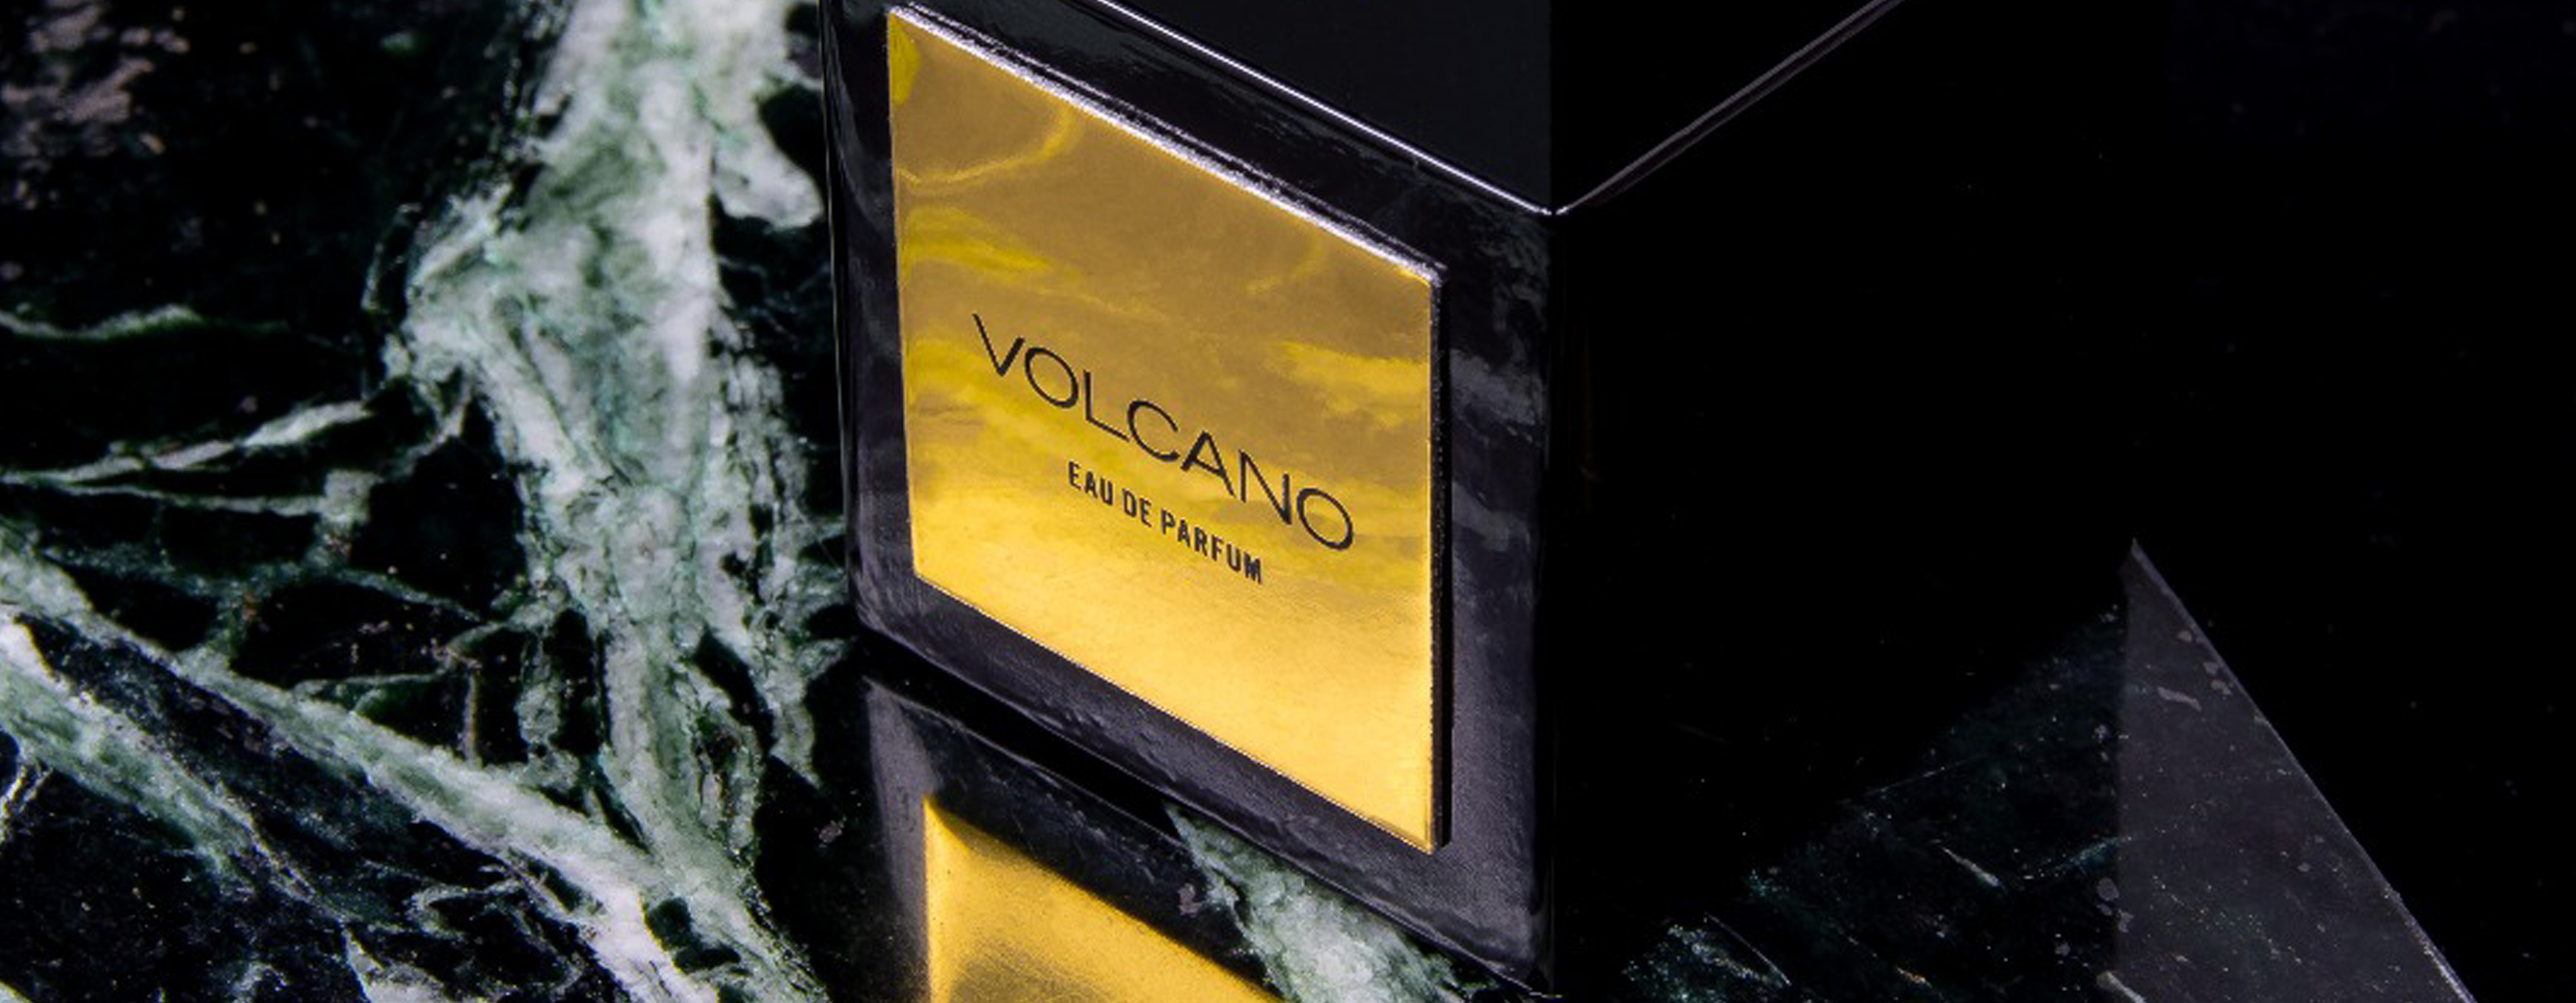 Meet the perfumer who created Volcano